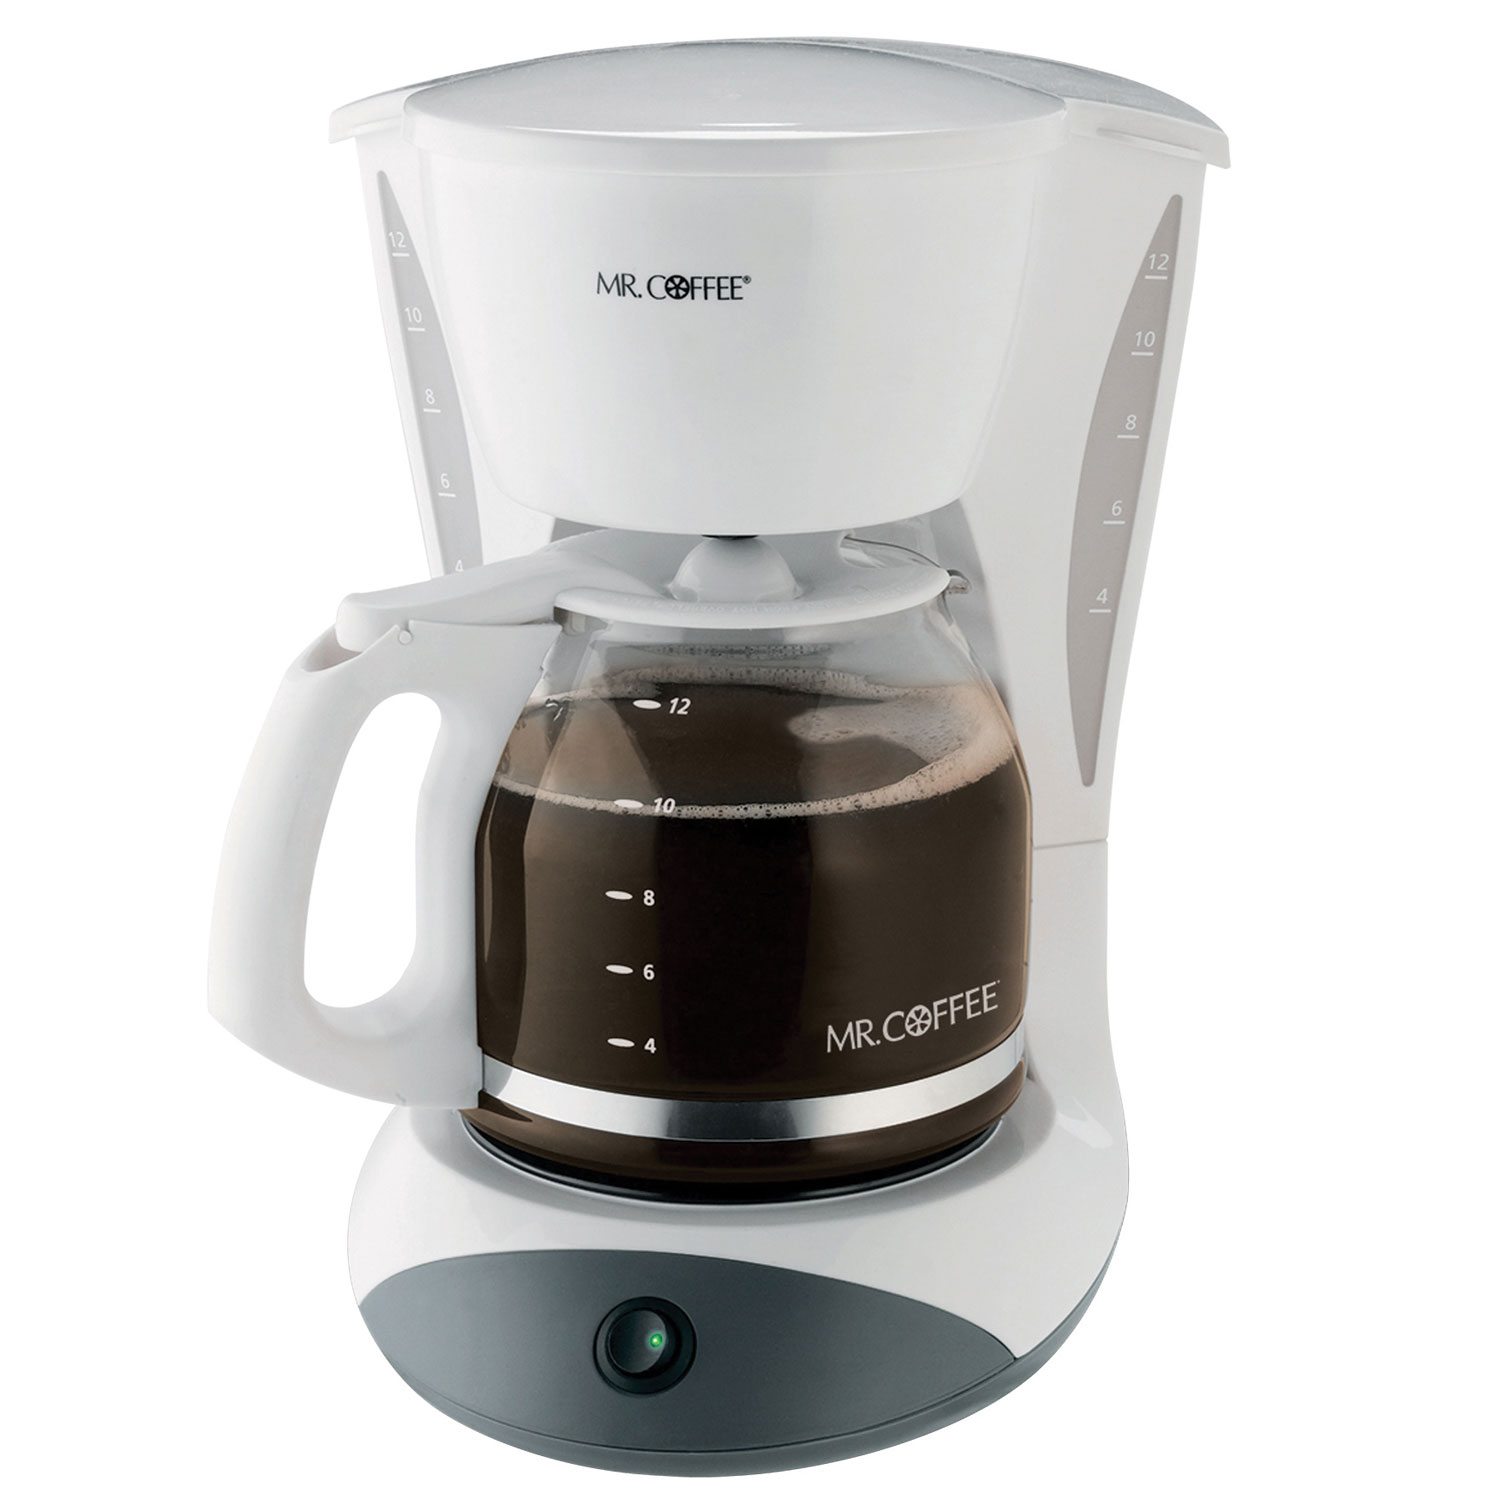 Sunbeam Coffee Maker Auto Shut Off : Sunbeam DWA12-NP Mr. Coffee 12 Cup Coffee Maker 2 Hour Auto Off Pause N Serve White 2 Per ...